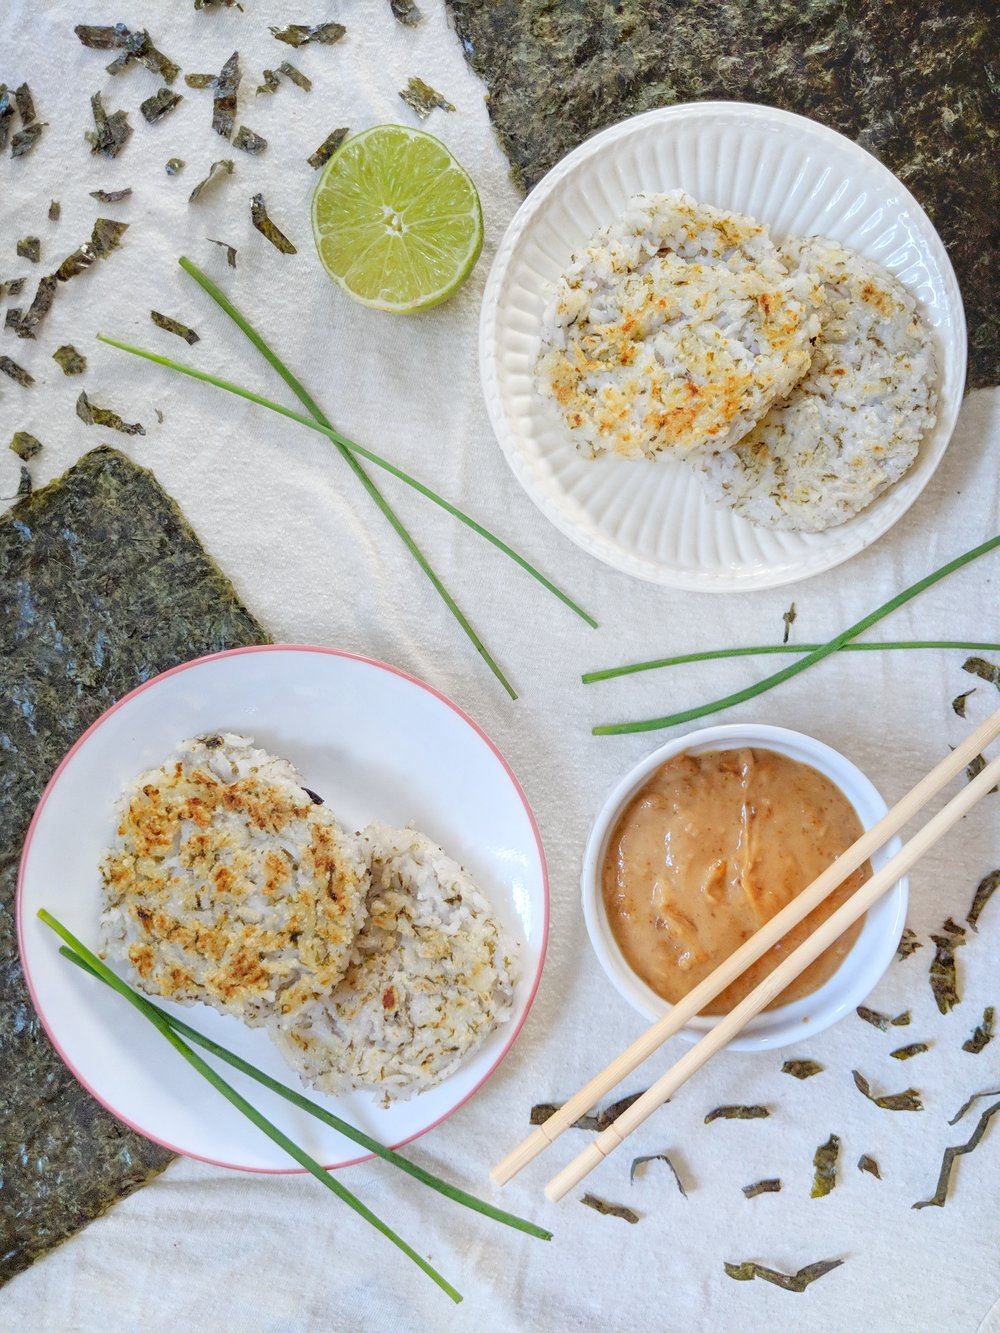 Seaweed Rice Cakes with Peanut Sauce